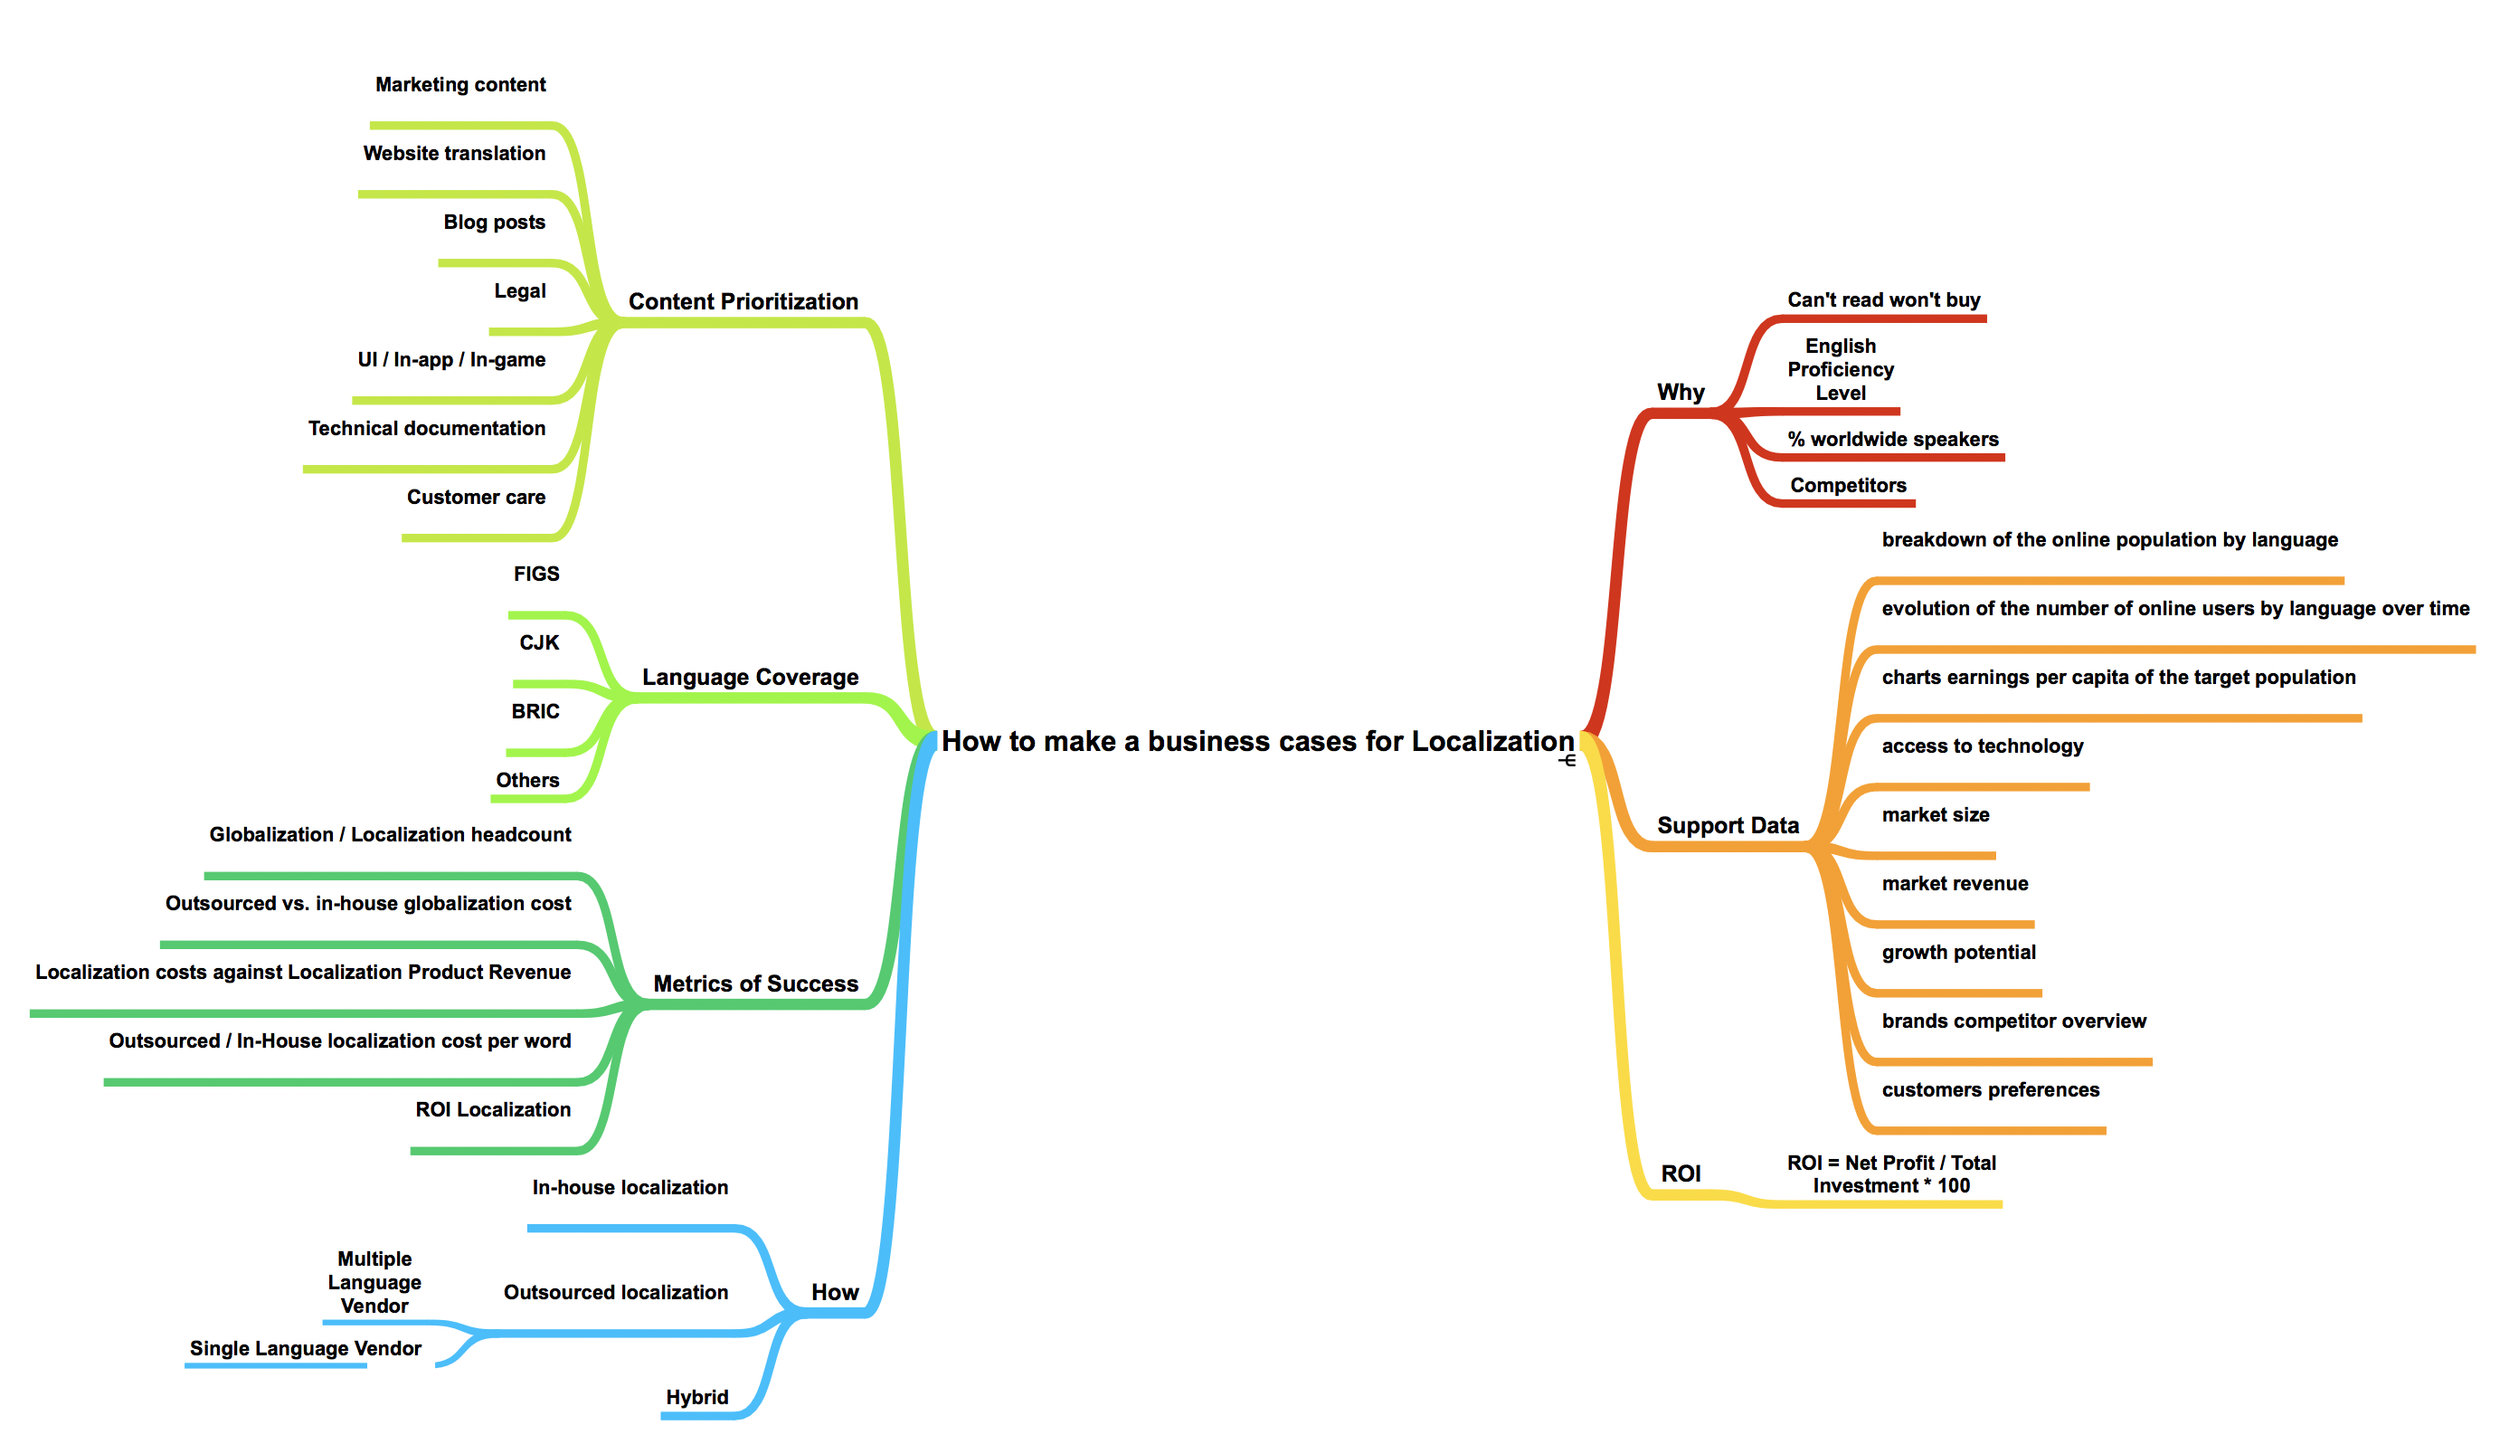 How to make a business cases for Localization @yolocalizo  click to enlarge the model